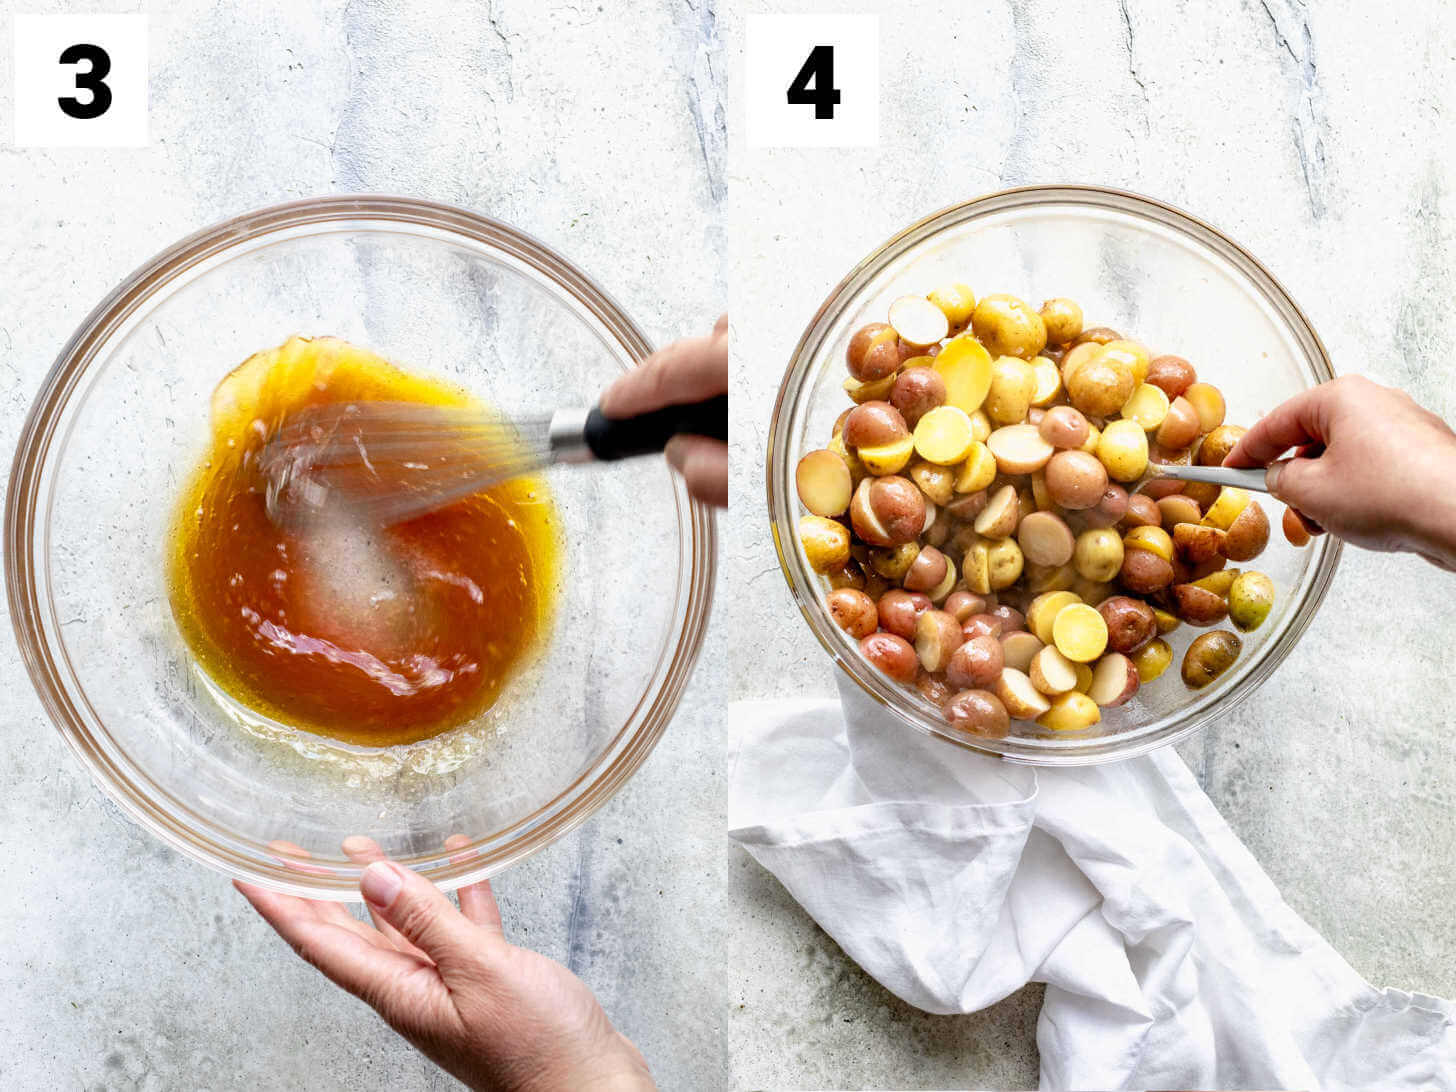 whisk the dressing then add the hot potatoes to the dressing